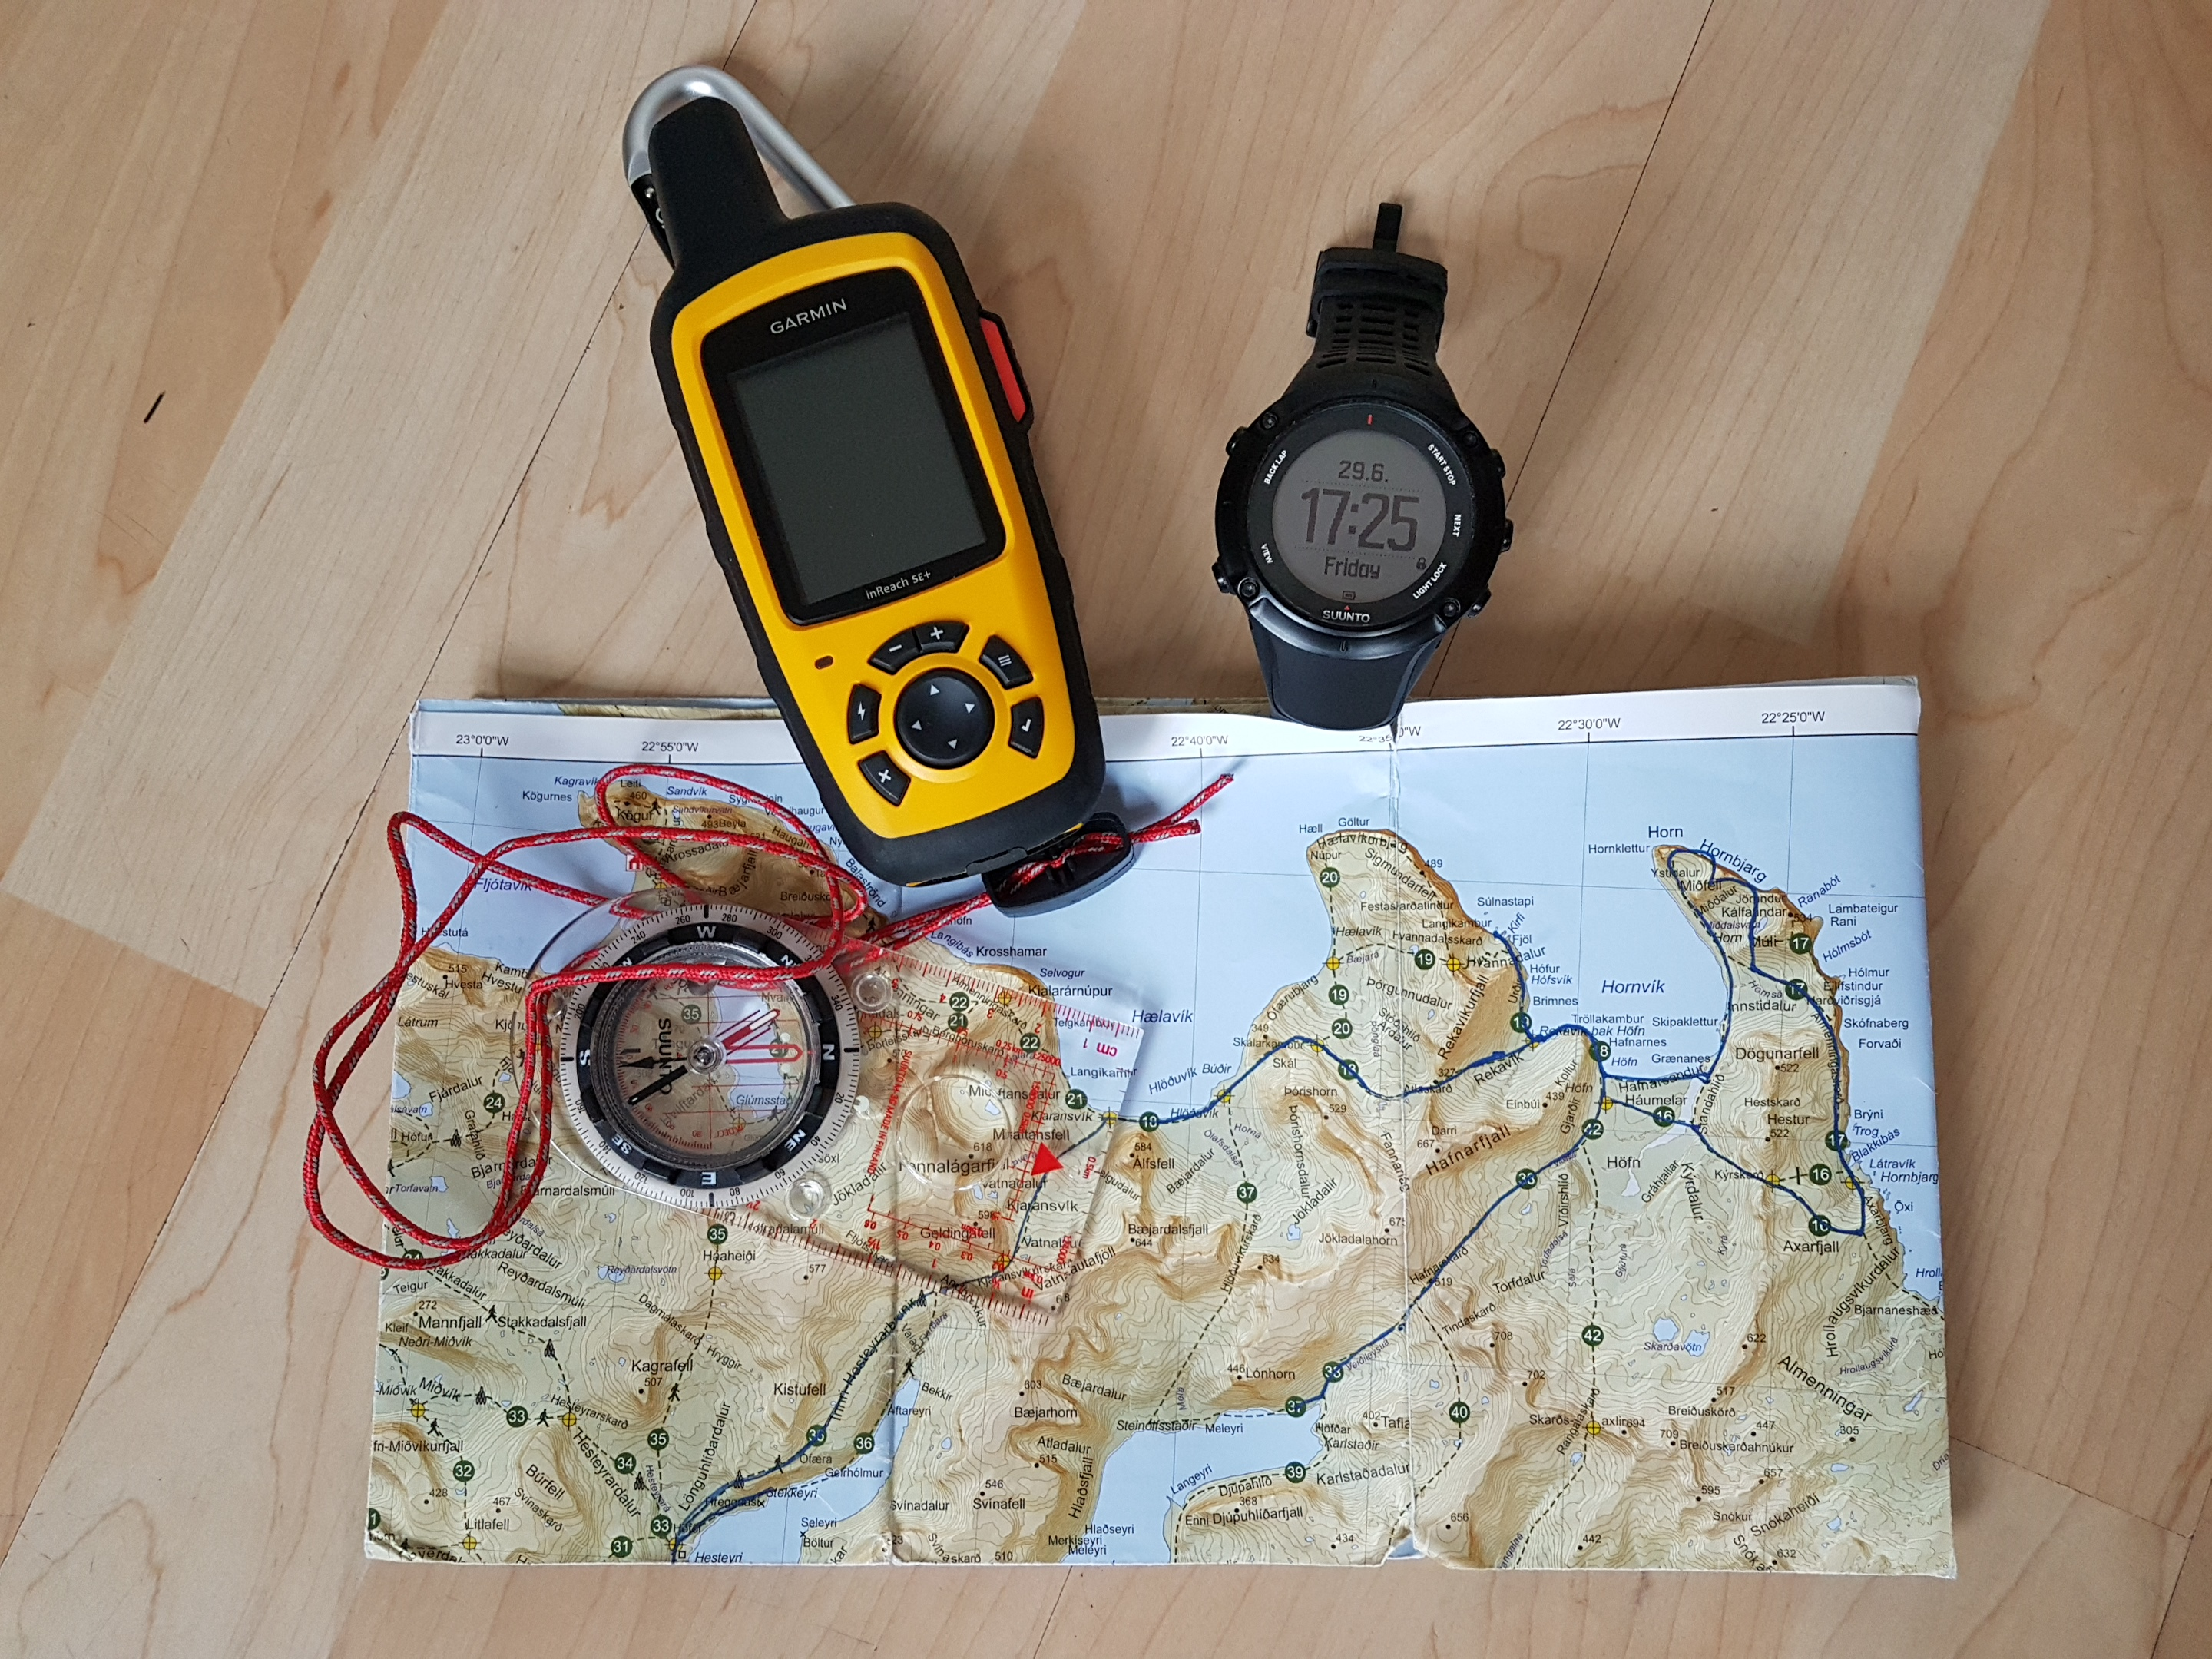 Navigation aids - Garmin InReach SE+, Suunto Ambit3 Peak watch, map and Suunto M3 compass